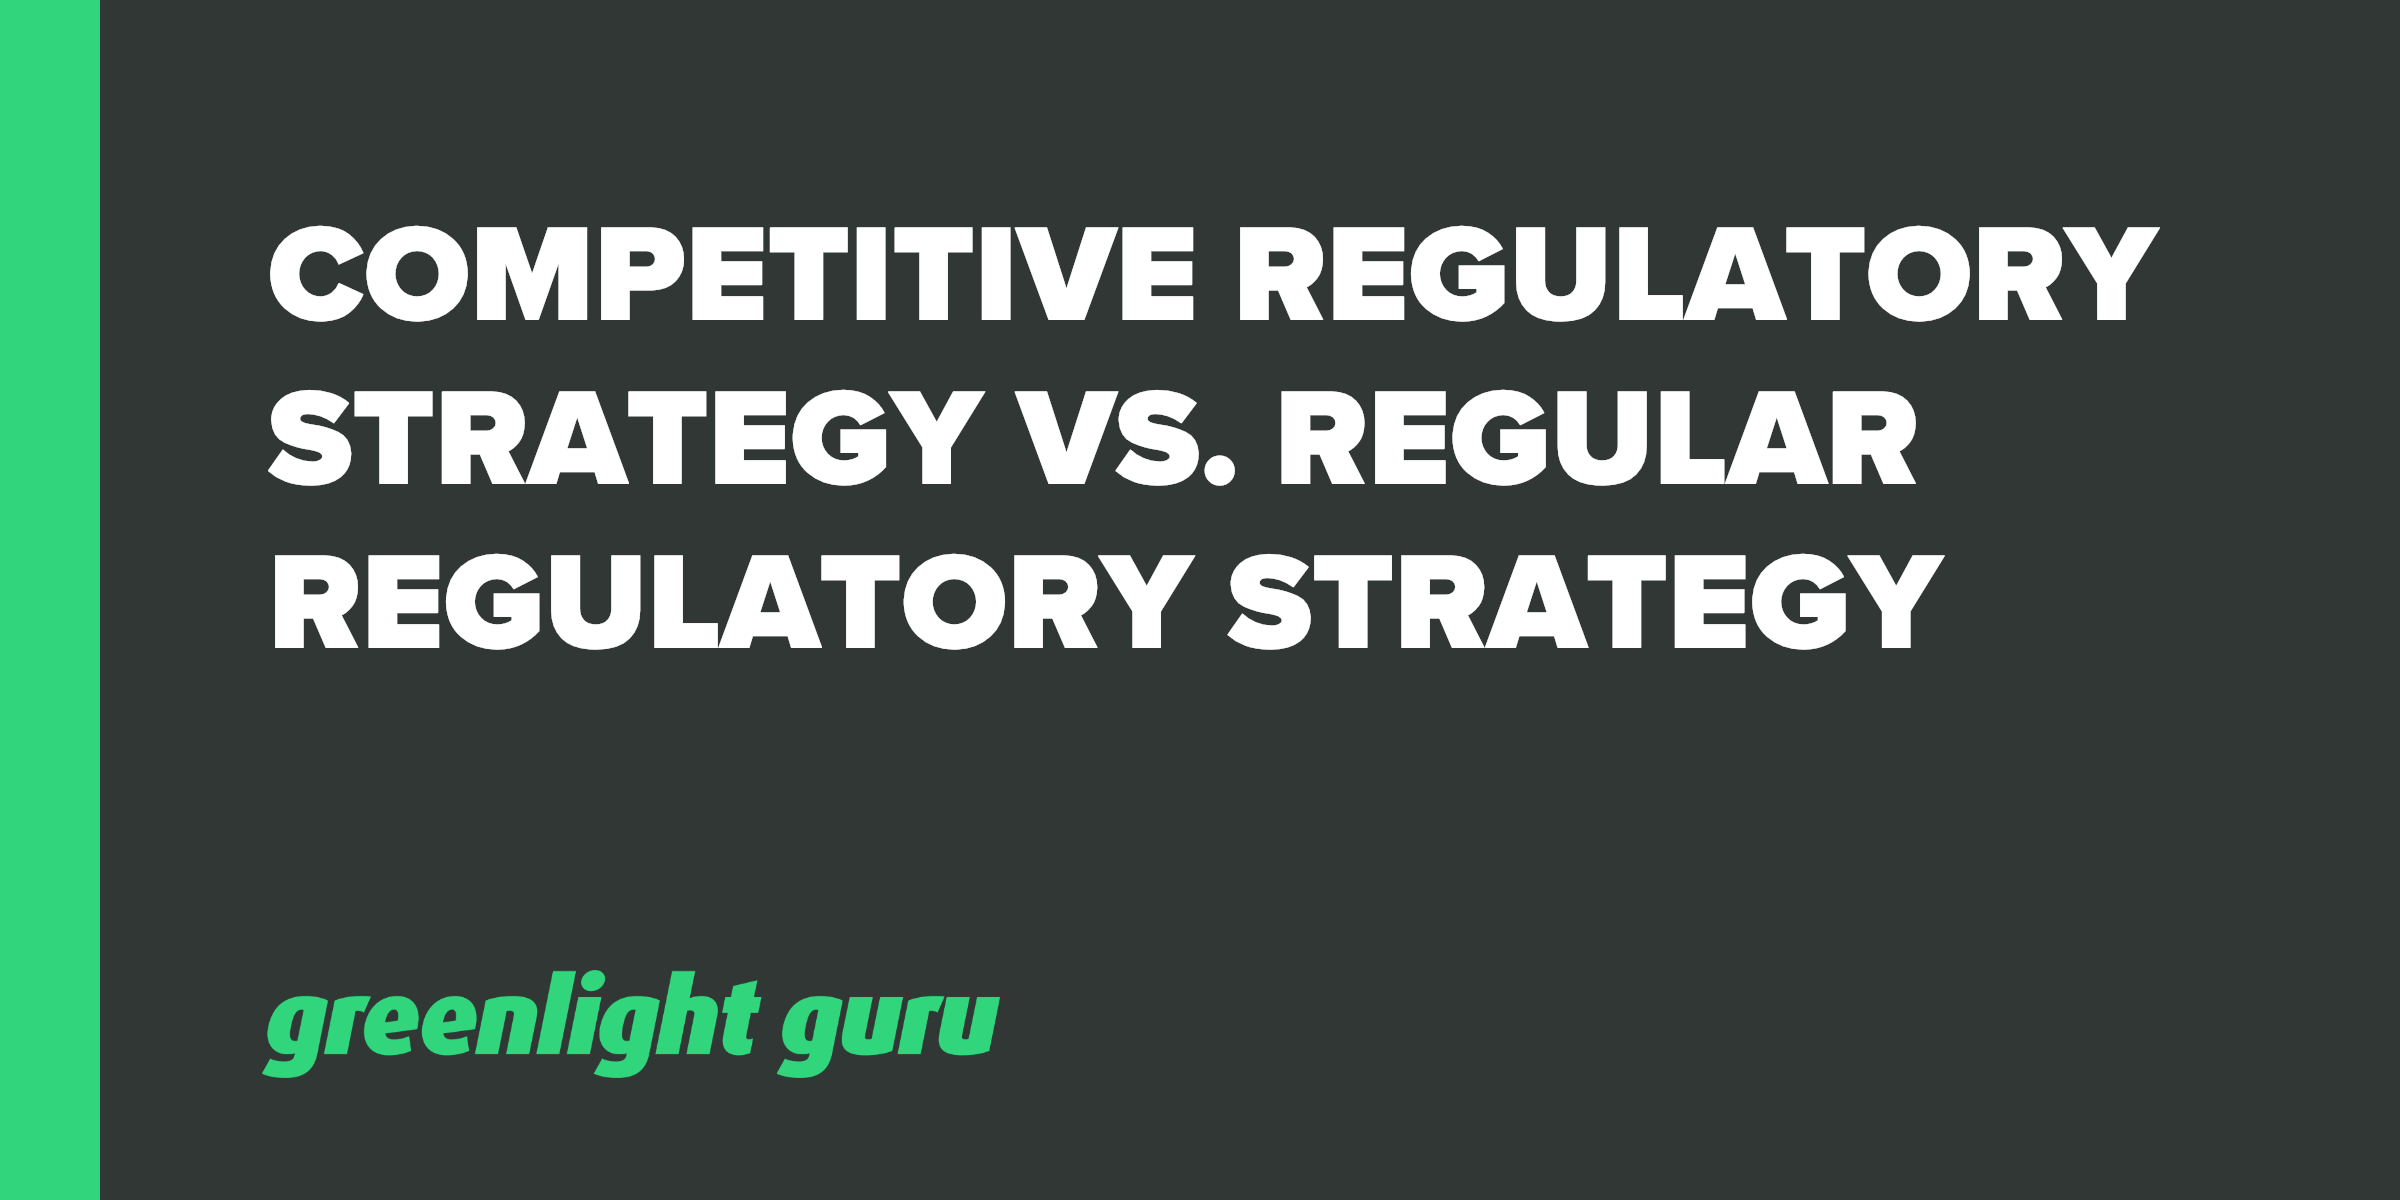 Comp regulatory strategy vs. regular